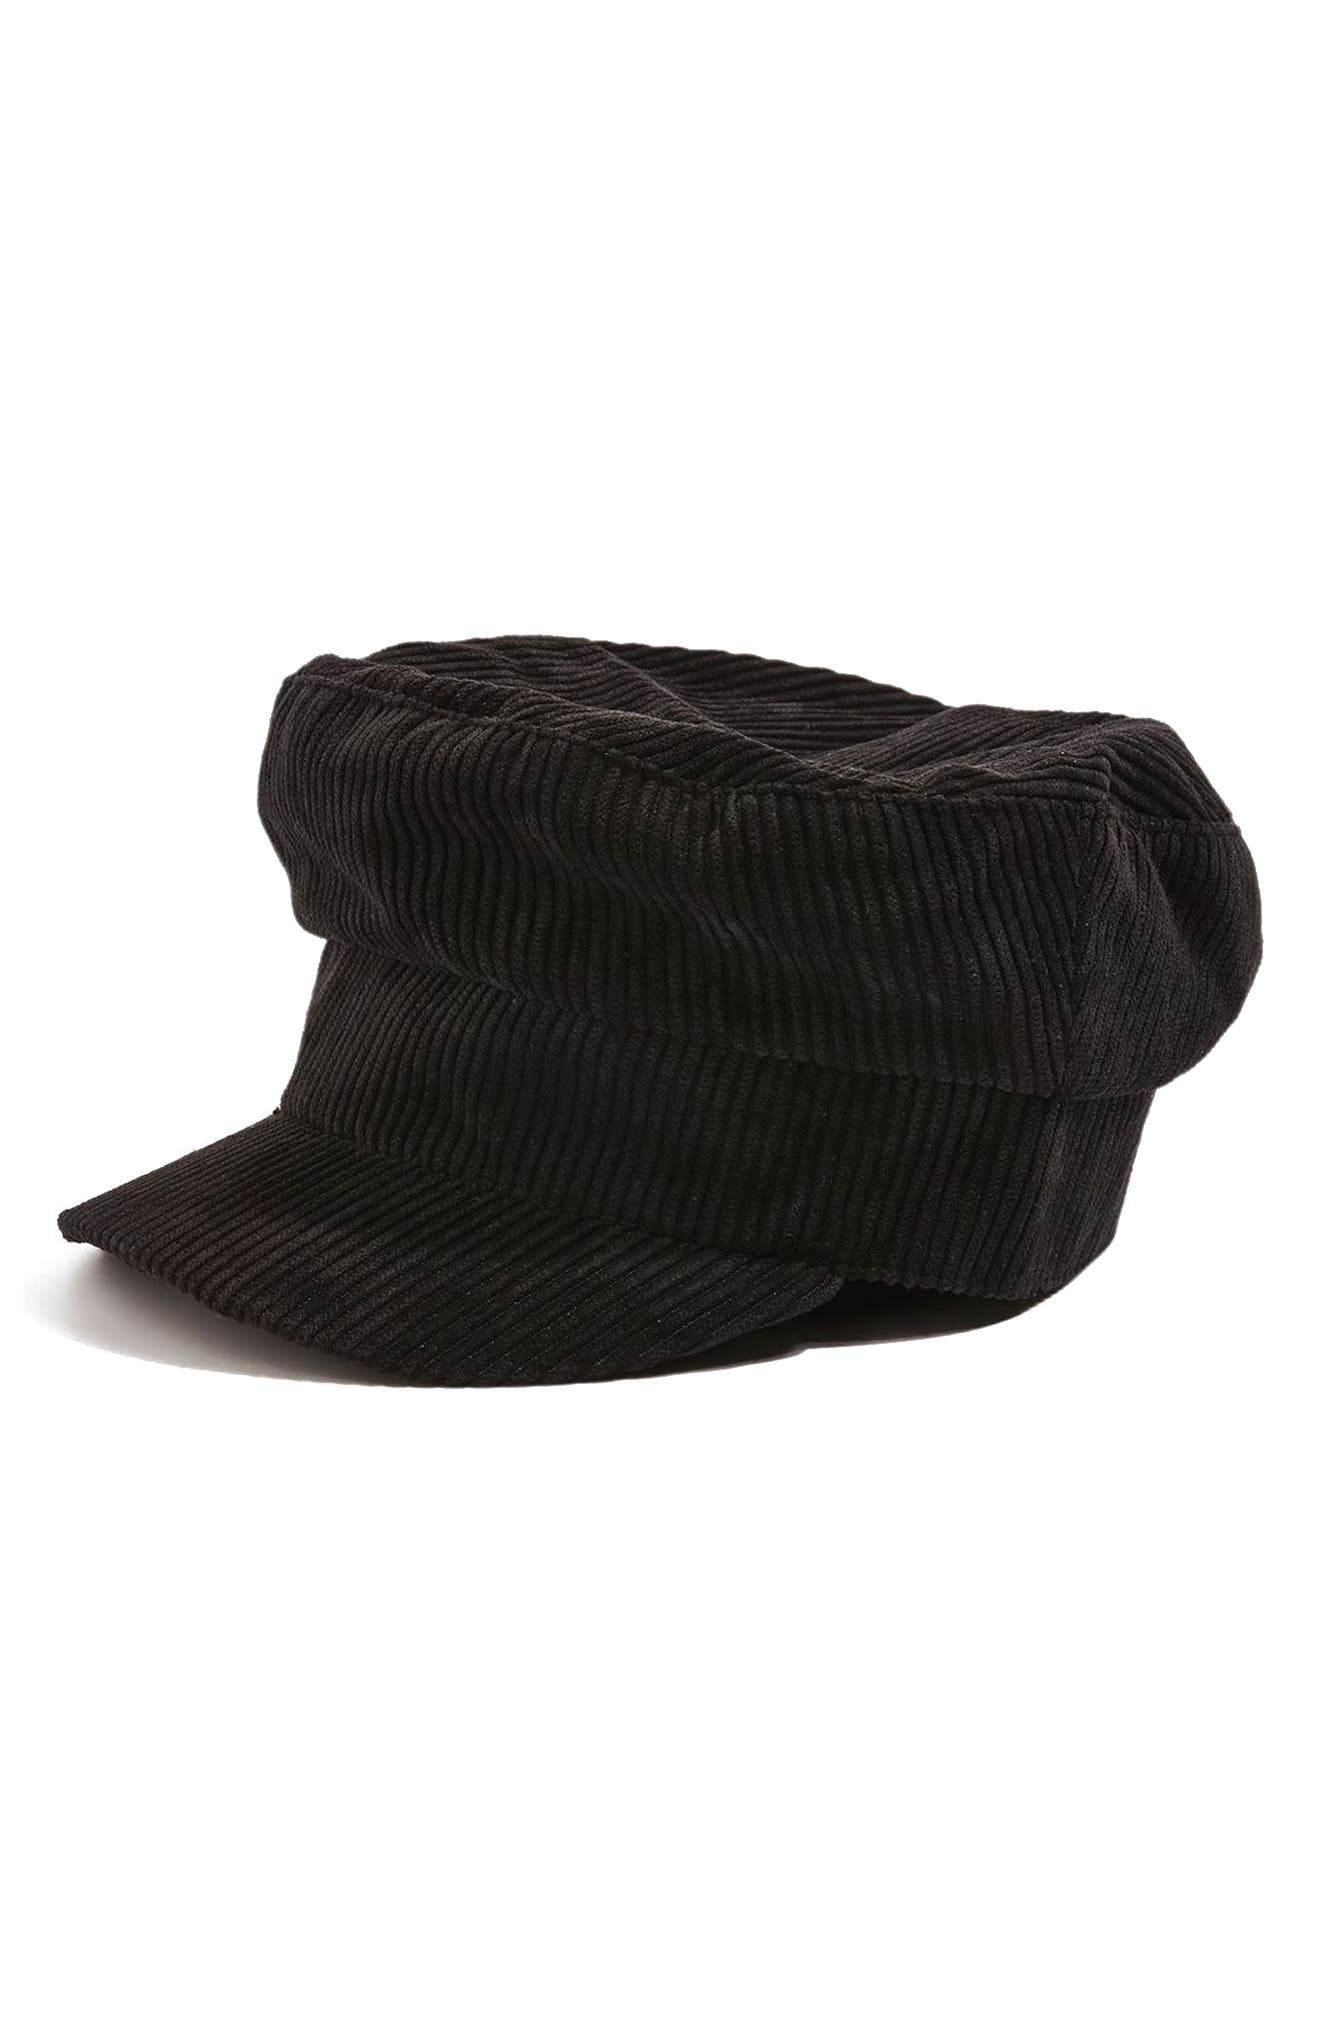 Corduroy Baker Boy Hat,                             Alternate thumbnail 3, color,                             Black